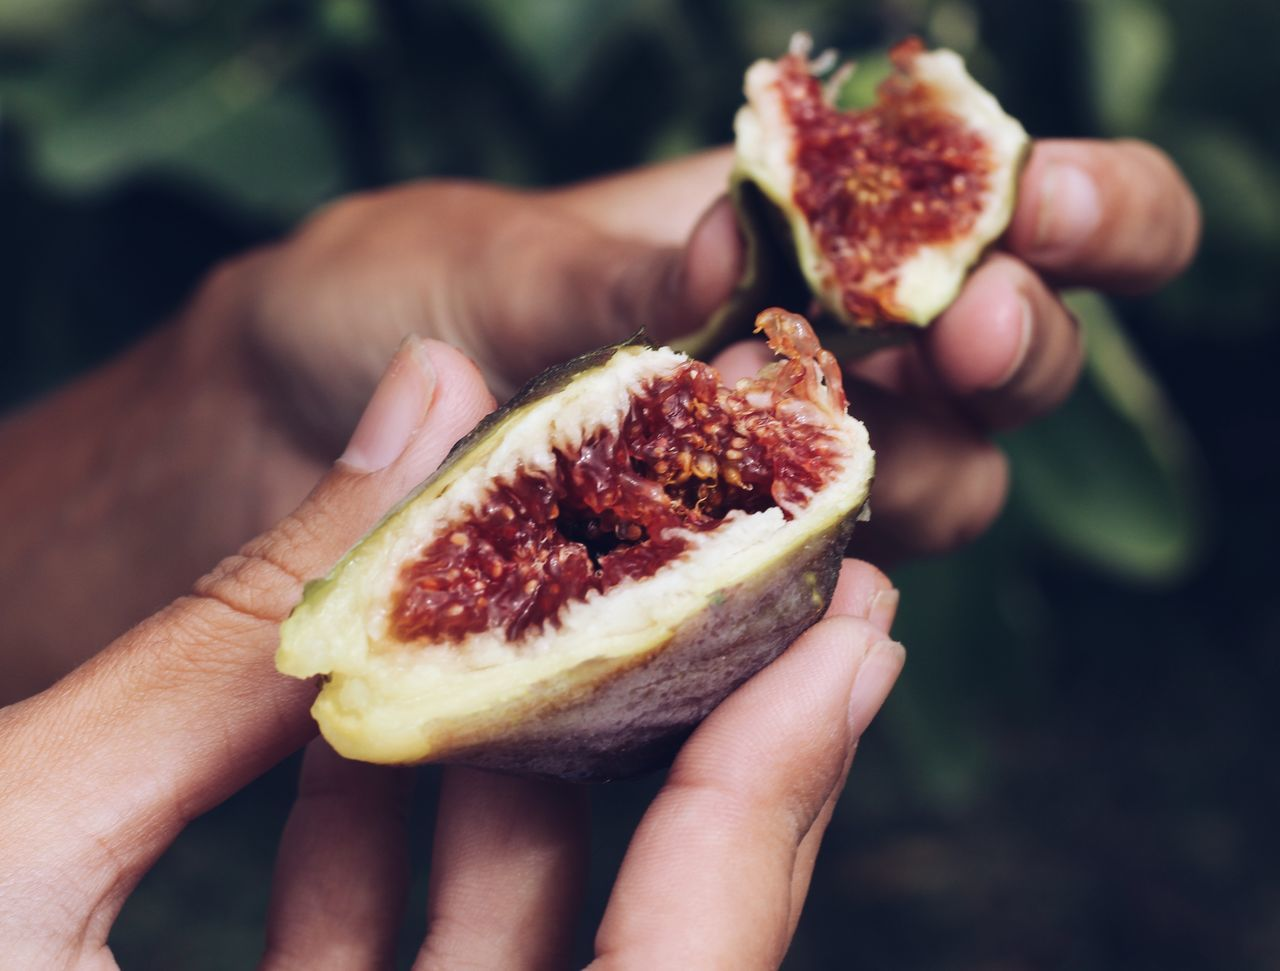 Cropped Hands Holding Figs